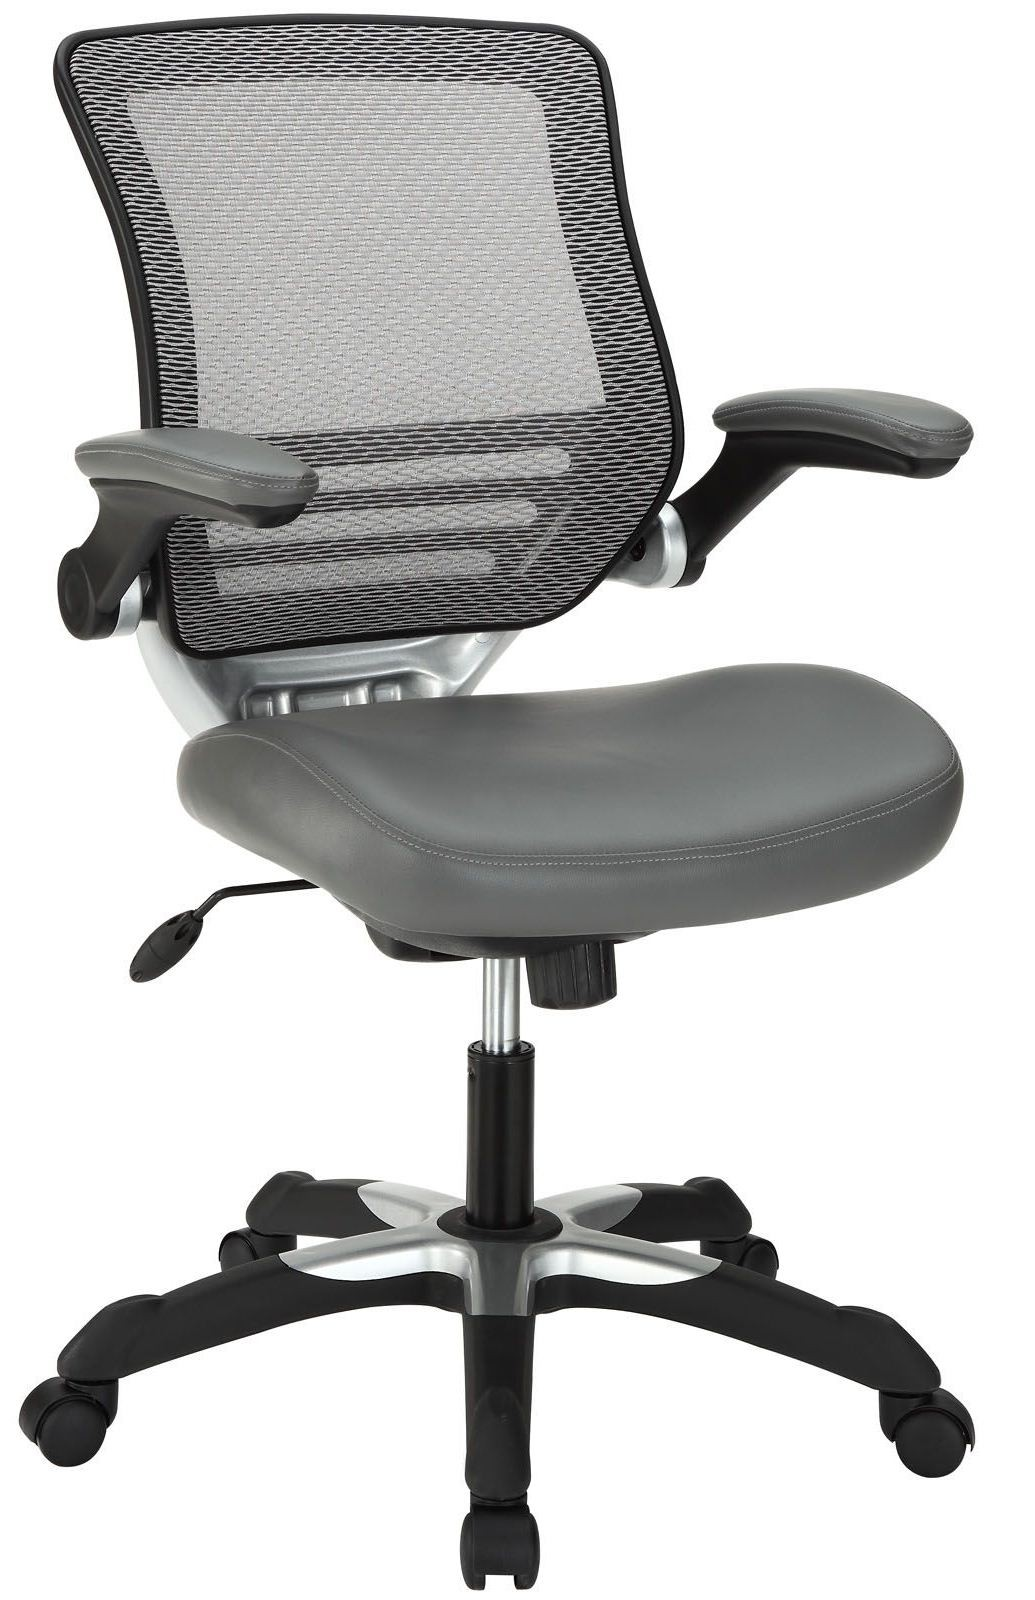 office chair vinyl formal sitting room chairs edge gray from renegade eei 595